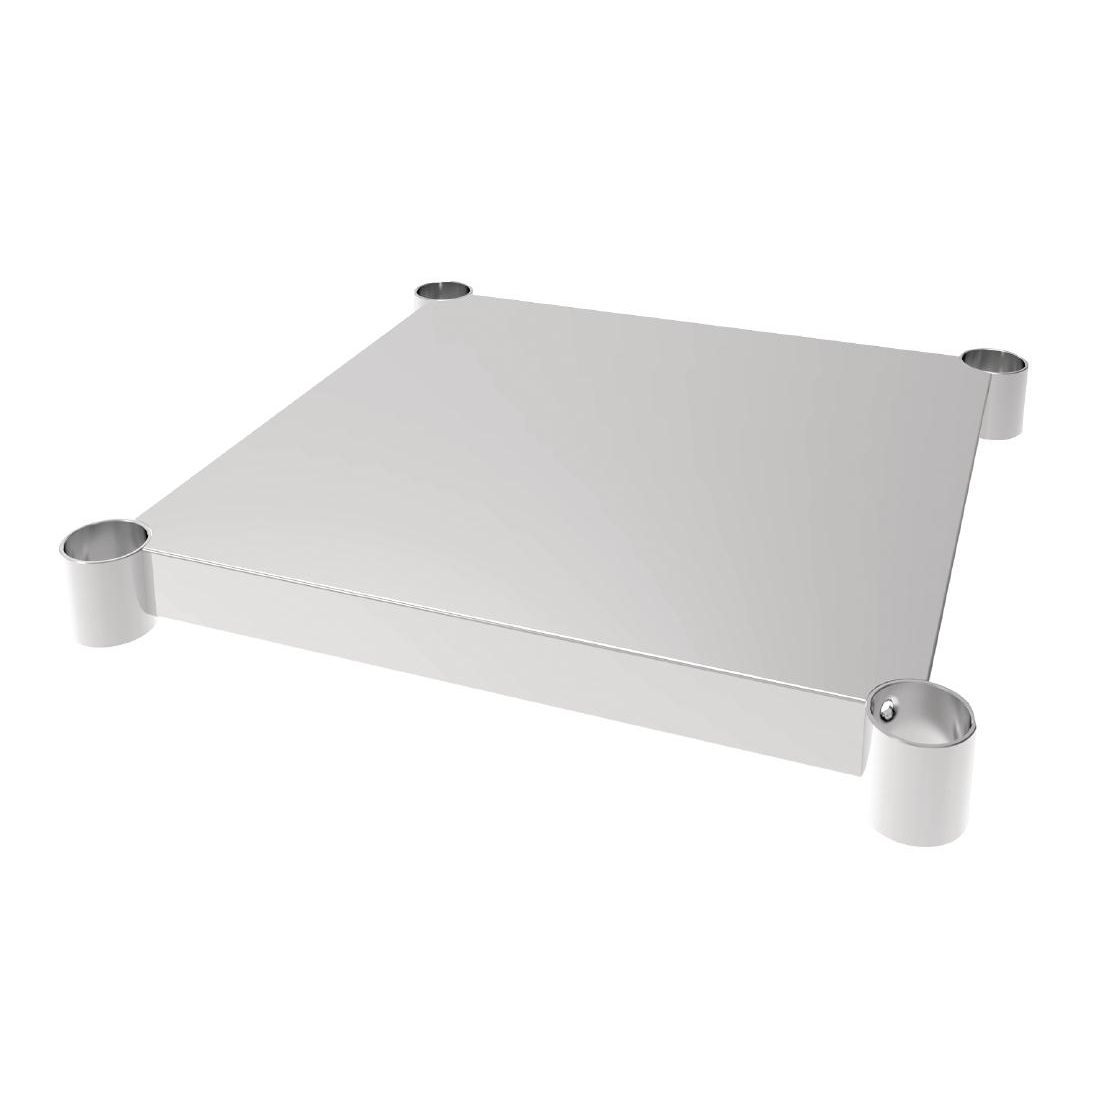 Vogue Stainless Steel Table Shelf 600x600mm